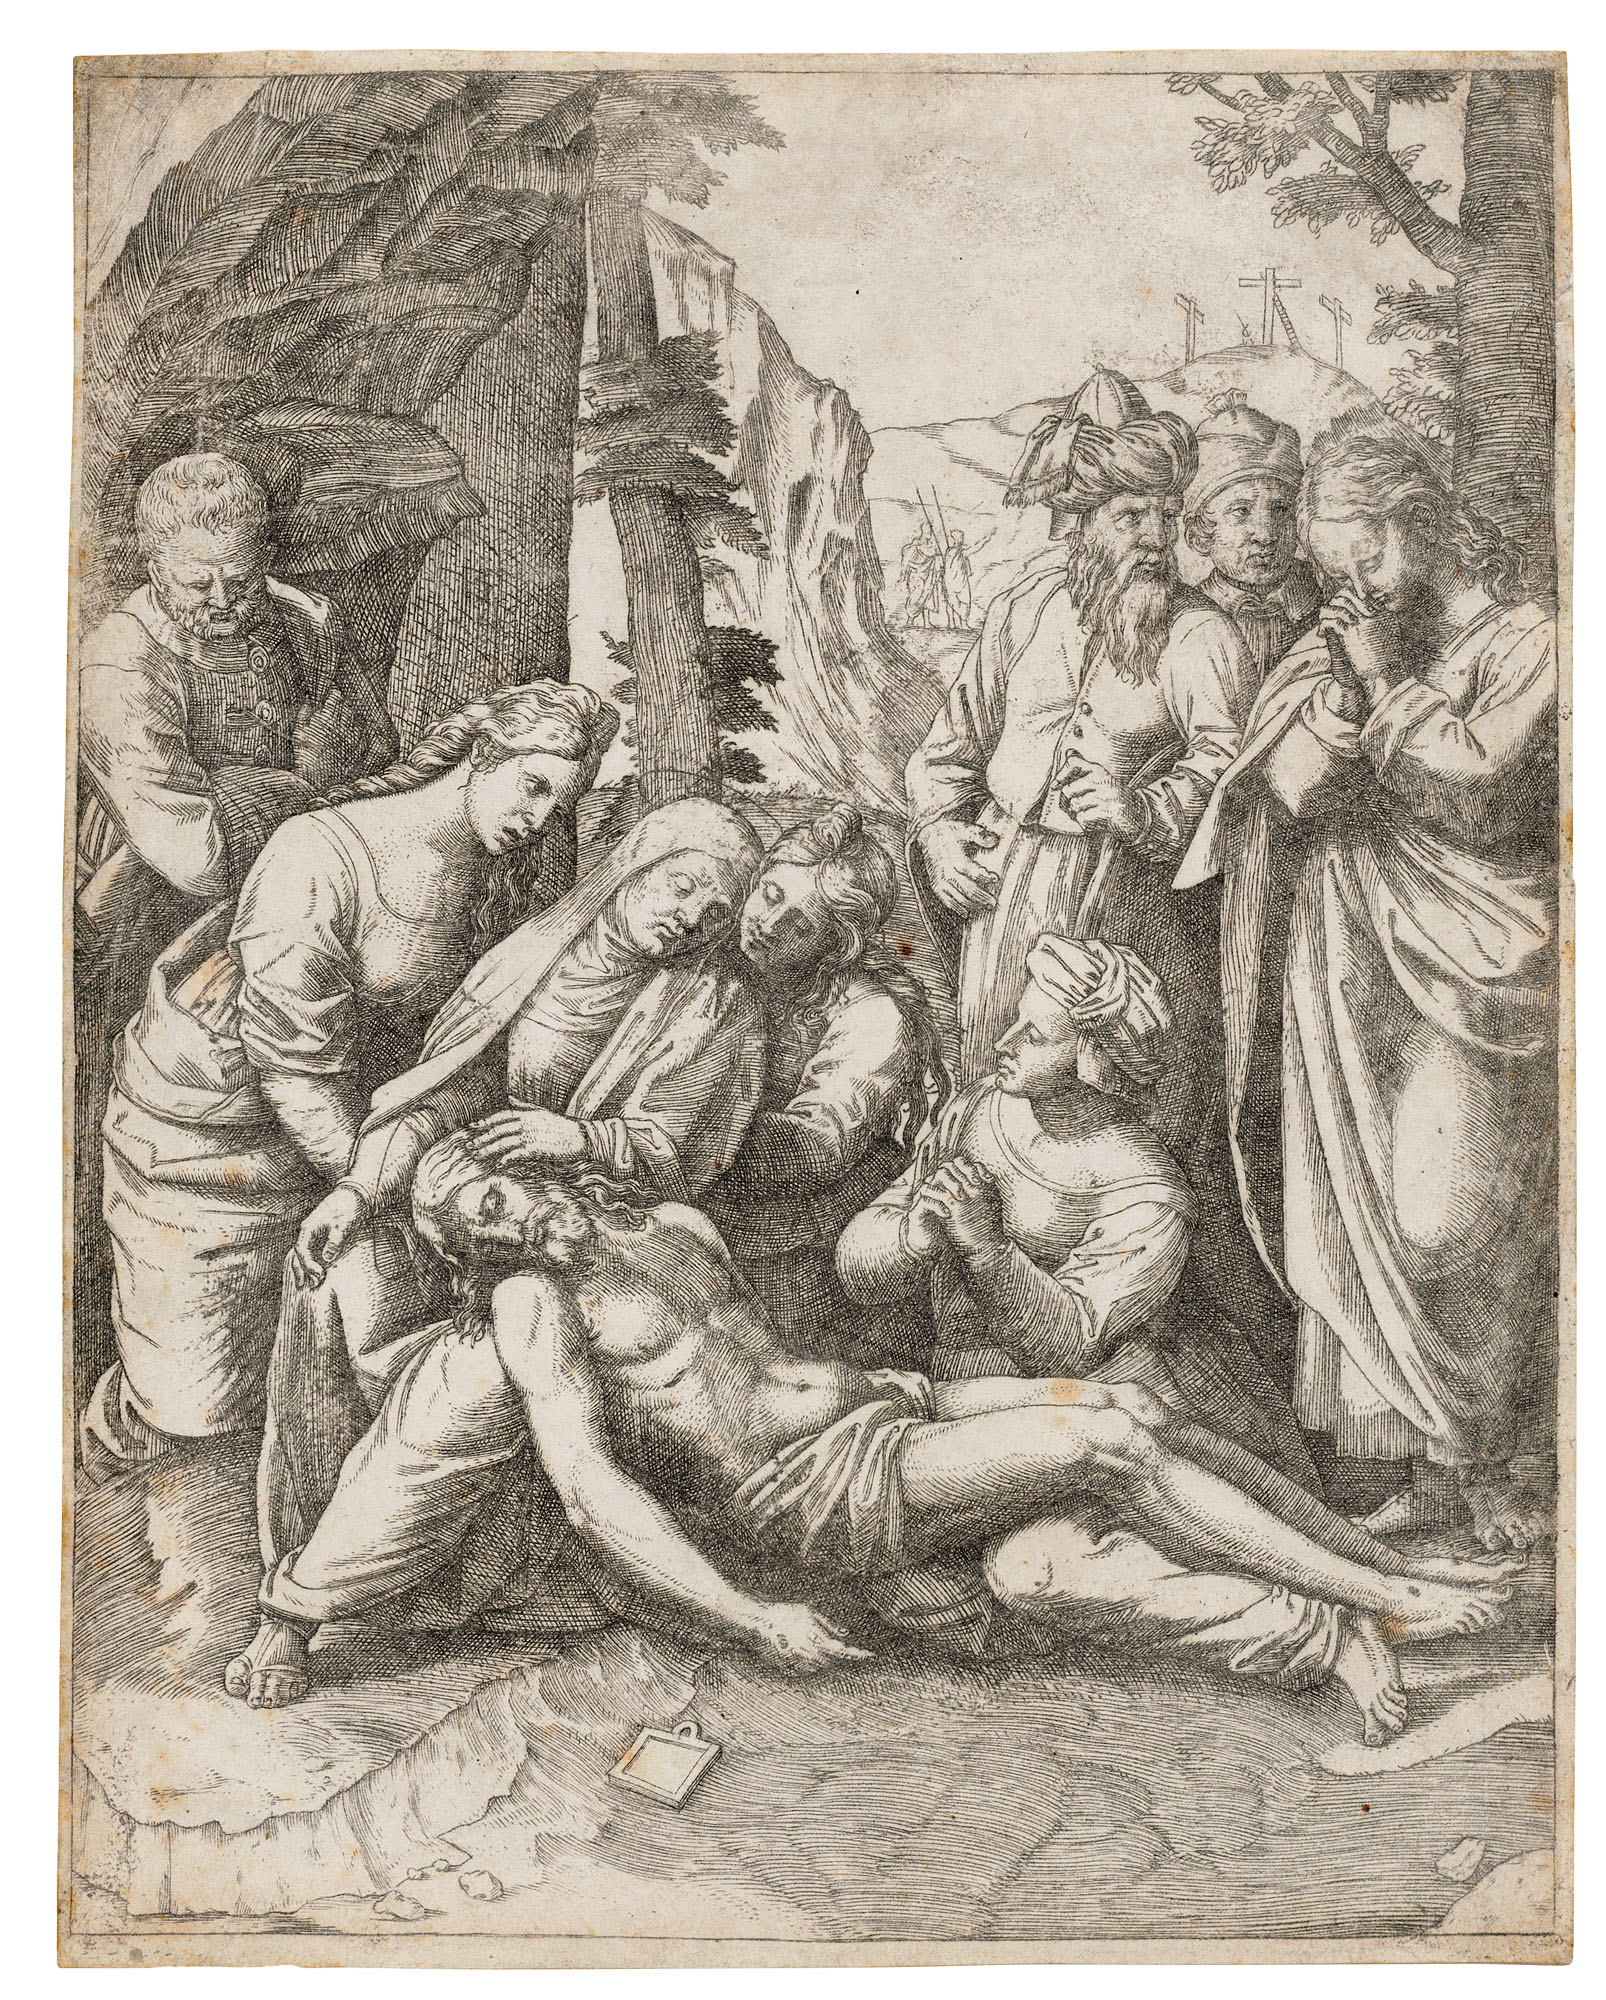 Marcantonio Raimondi (1480-1534) after Raphael (1483-1520), The Lamentation over the Body of Christ, circa 1515-16. Engraving on laid paper. Sheet 218 x 172 mm. Sold for £1,375 inOld Master Prints, 19-28 January 2021, Online